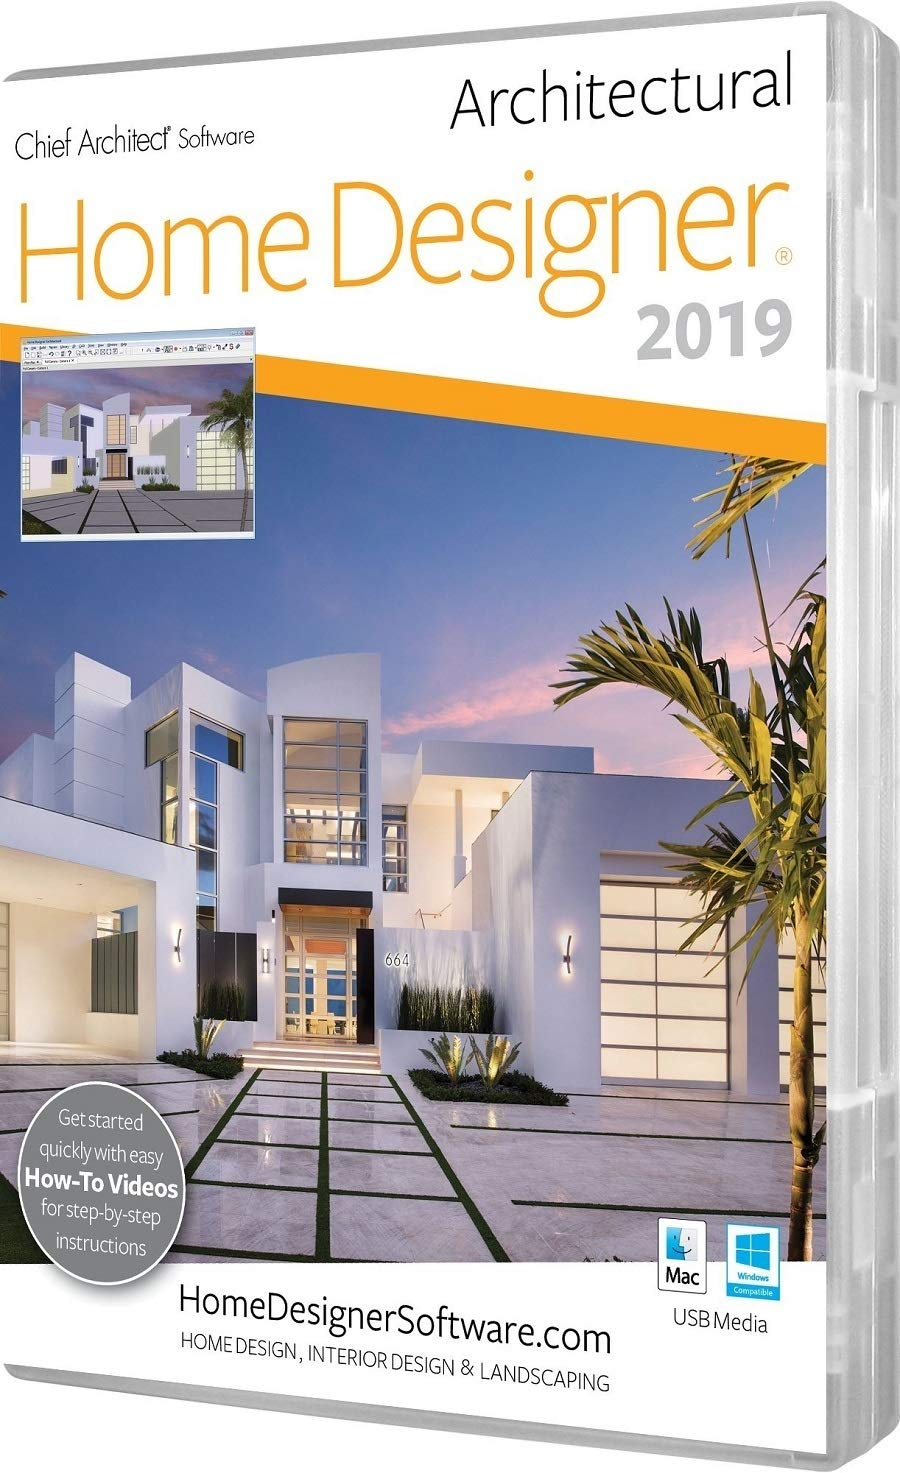 Chief Architect Home Designer Architectural 2019 by Chief Architect